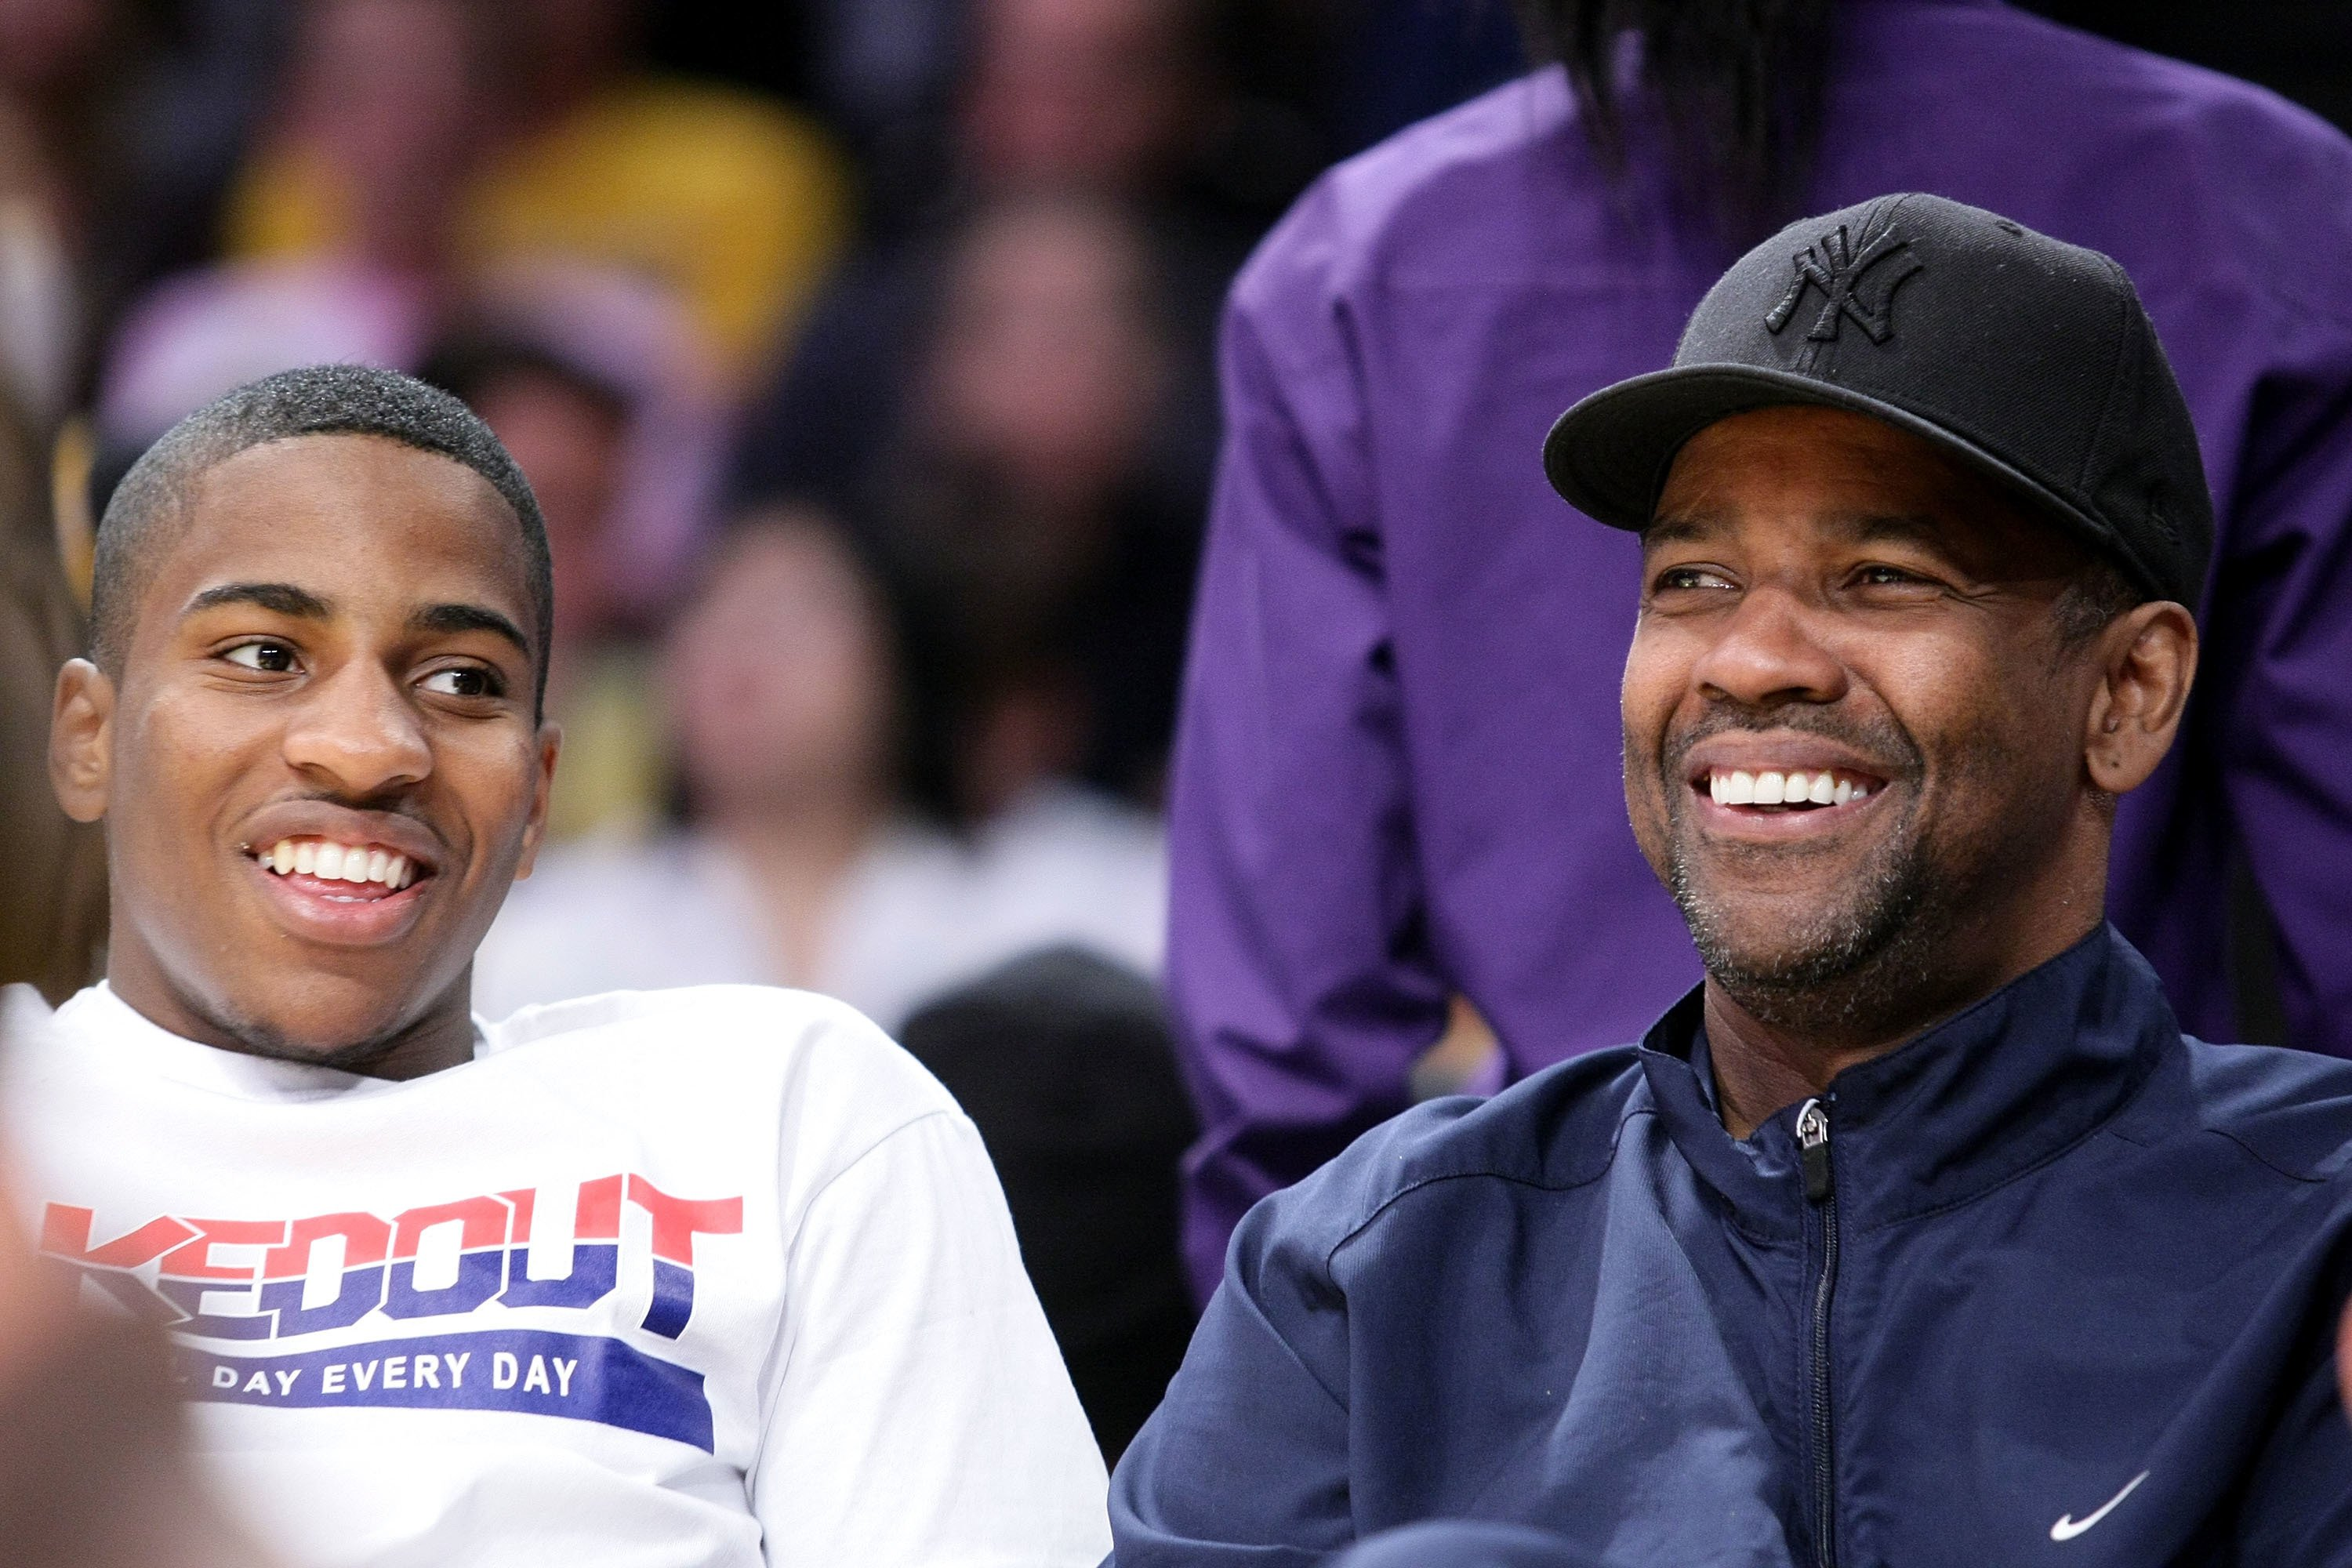 Denzel Washington and son Malcolm at a Los Angeles Lakers game at Staples Center in 2009 | Source: Getty Images